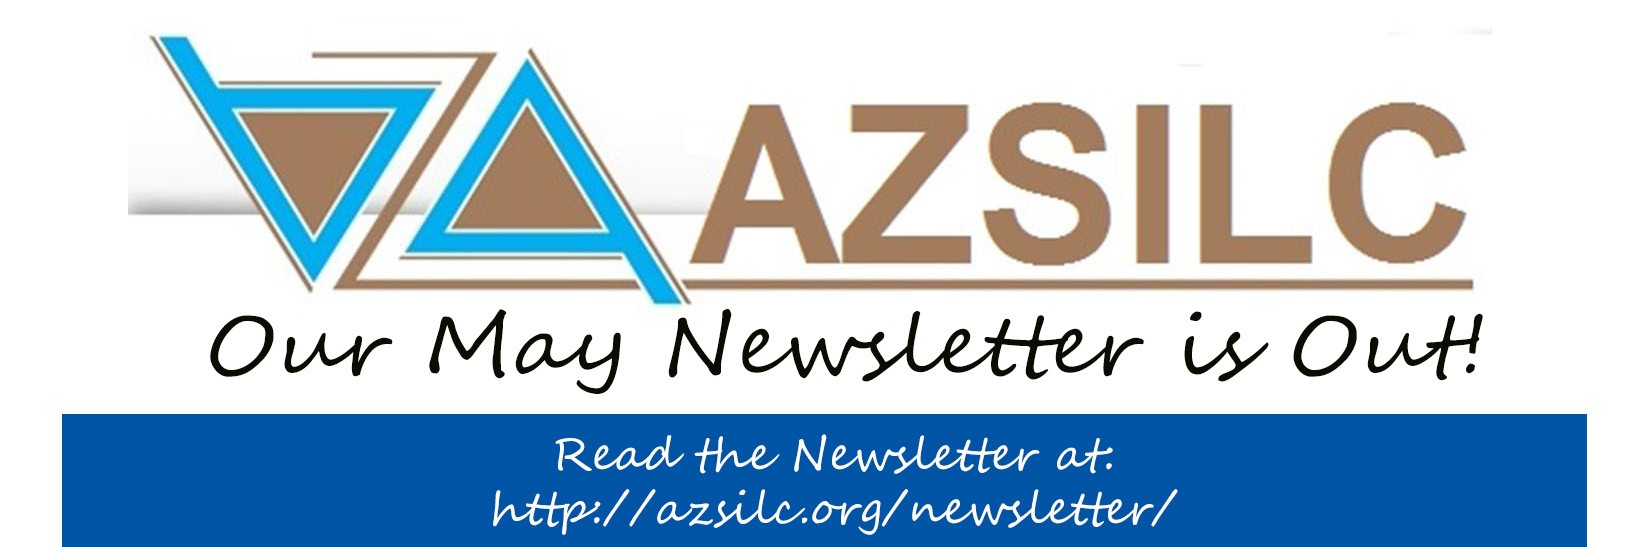 ** Have you read the May edition of our newsletter? *** The May edition of Arizona Independent Living features articles on the upcoming 2017 - 2019 State Plan for Independent Living (SPIL), an article on the 2016 Legislative Session, information on our upcoming Public Hearing (on June 1st), a Council member spotlight on Bob Michaels, and information on how to join the Statewide Independent Living Council.